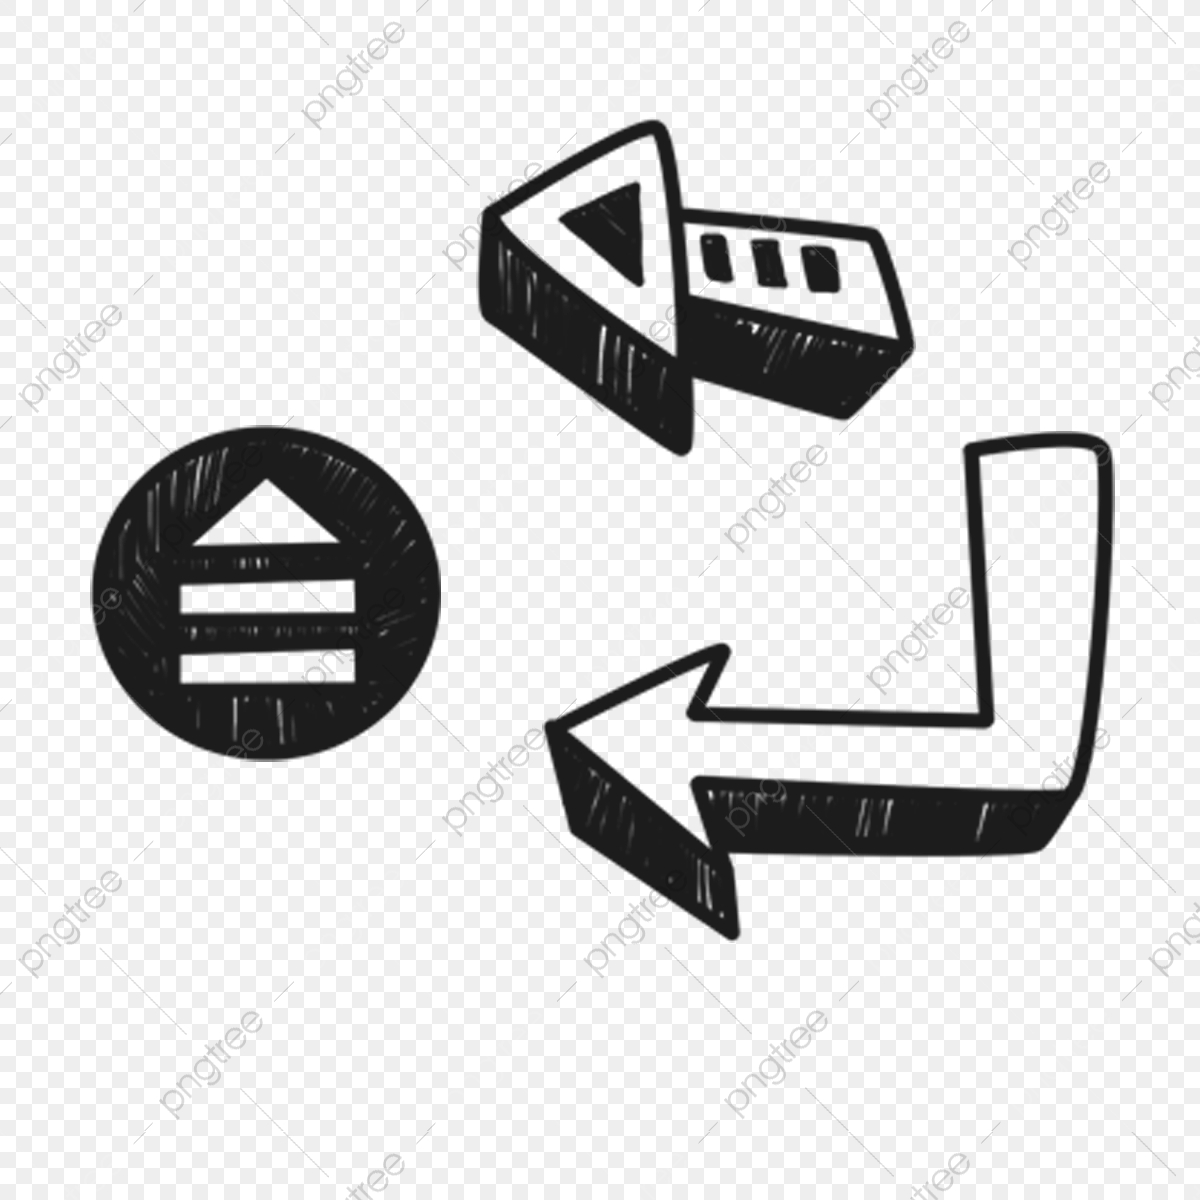 Black And White Hand Png Images Vector And Psd Files Free Download On Pngtree Find & download free graphic resources for black and white. https pngtree com freepng cartoon black and white hand drawn arrow picture turning 5509361 html